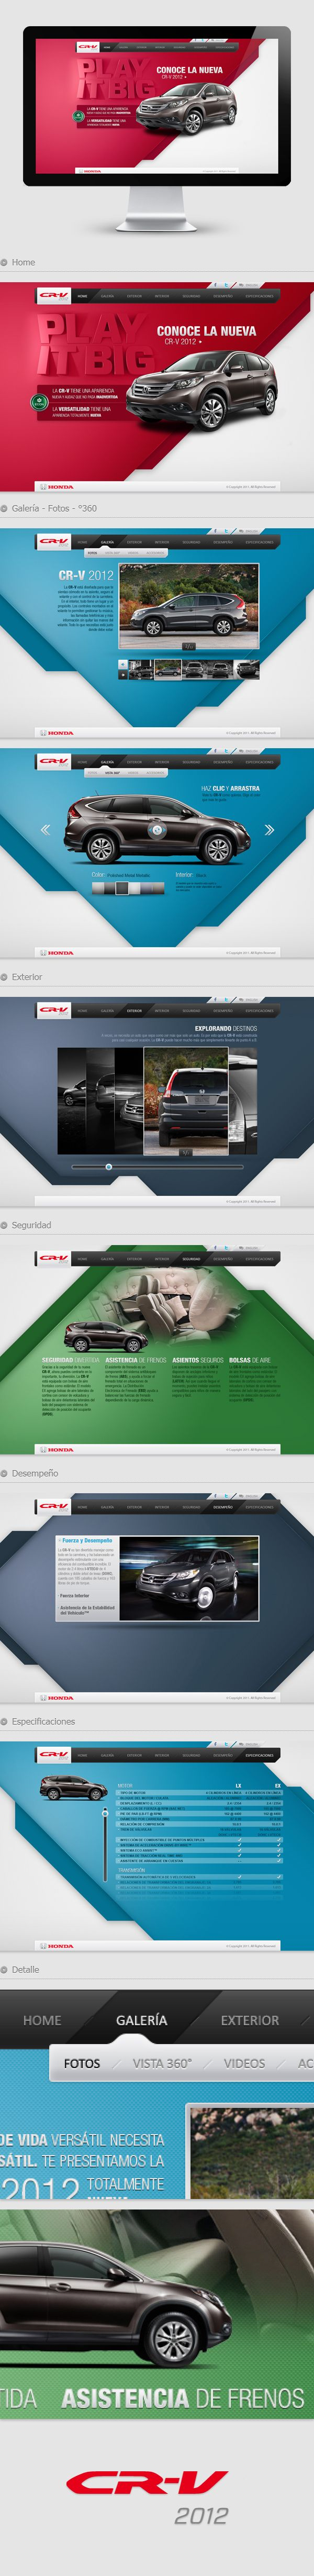 CR - V 2012 - Honda on Web Design Served